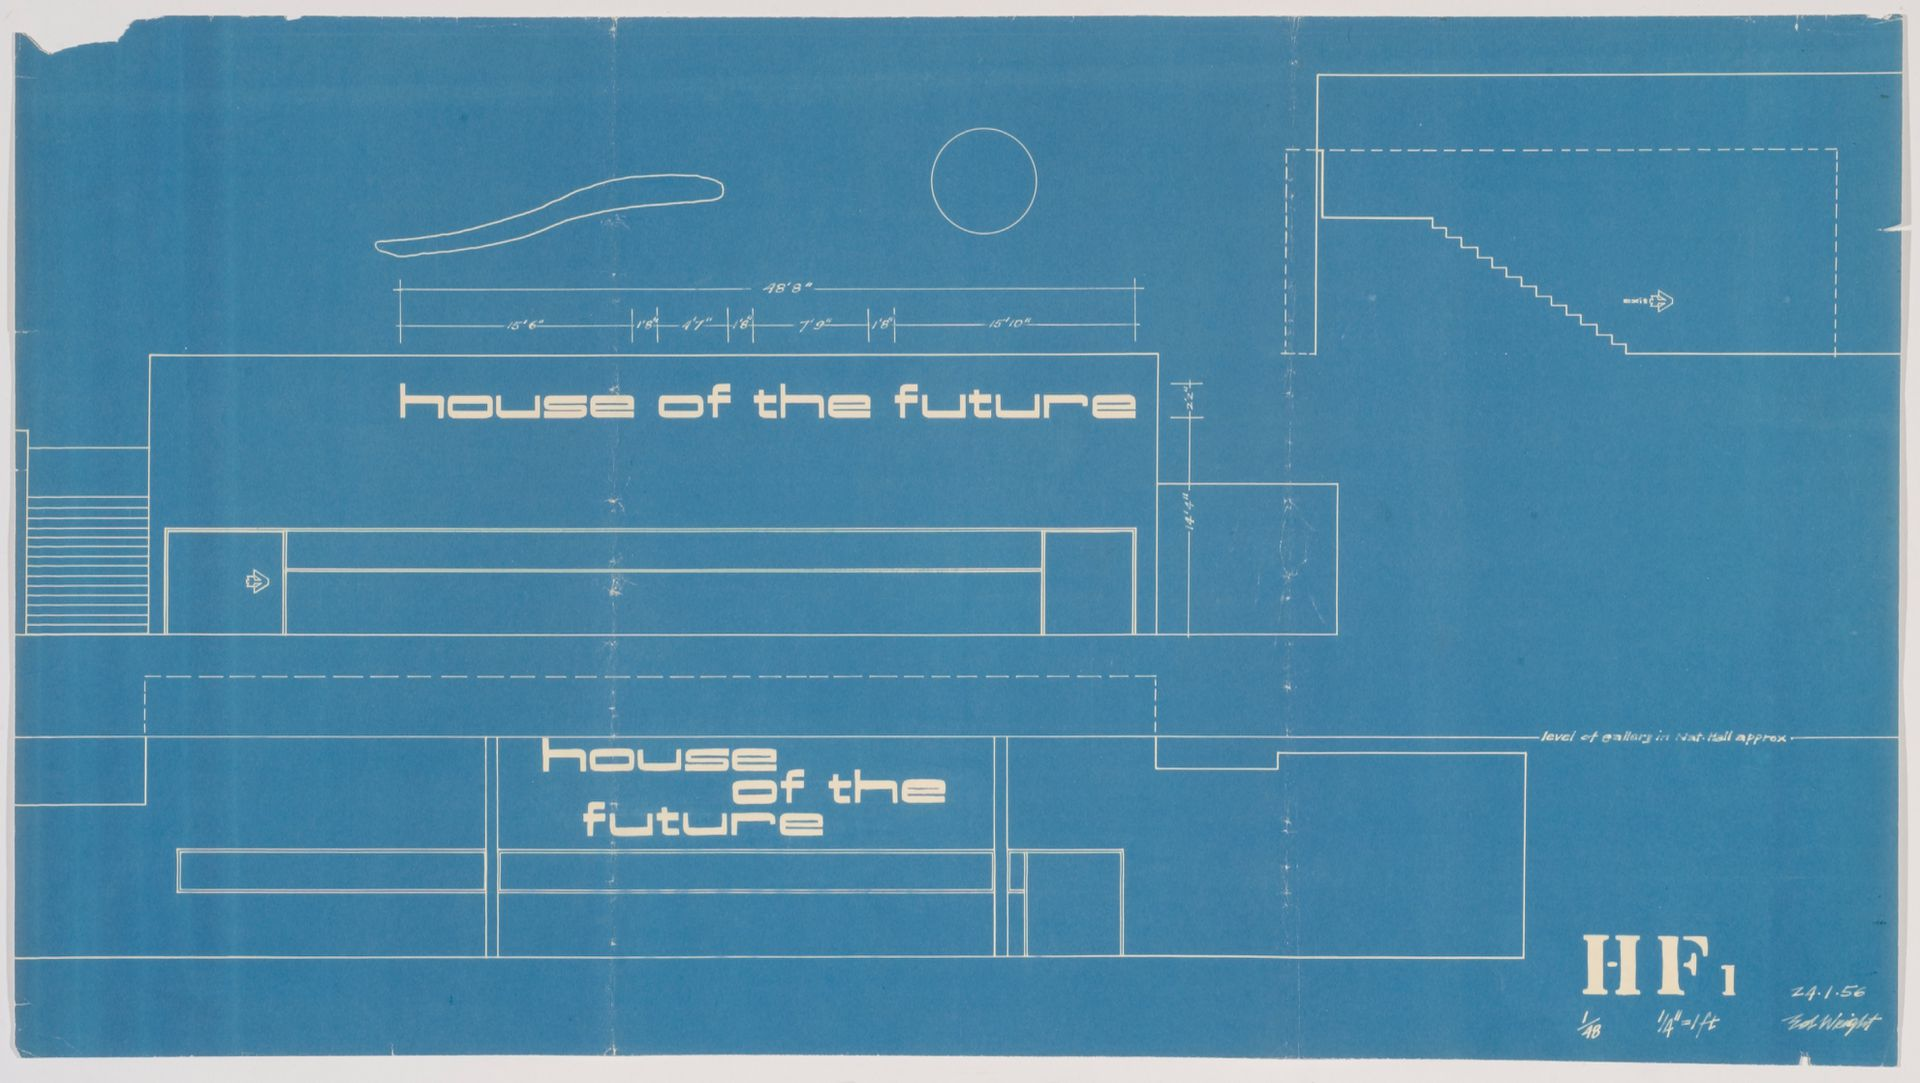 House Plans With Dimensions 1956 House Of The Future